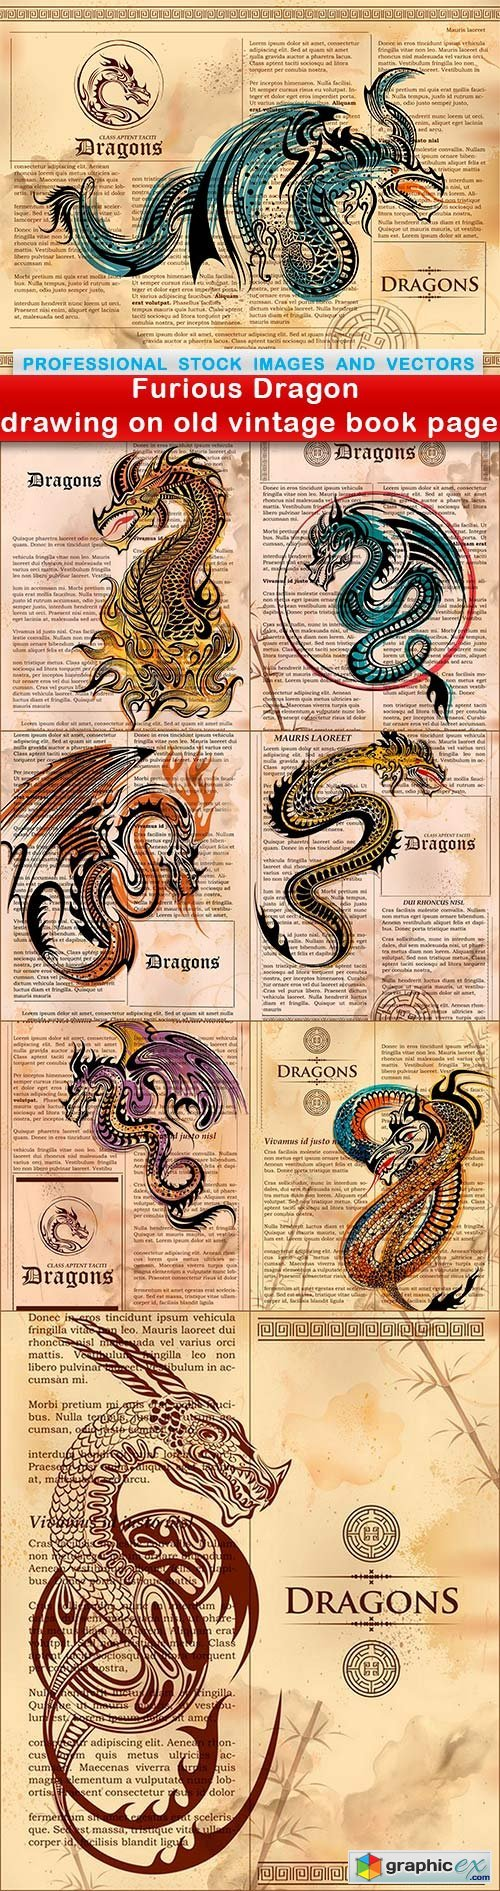 Furious Dragon drawing on old vintage book page - 8 EPS